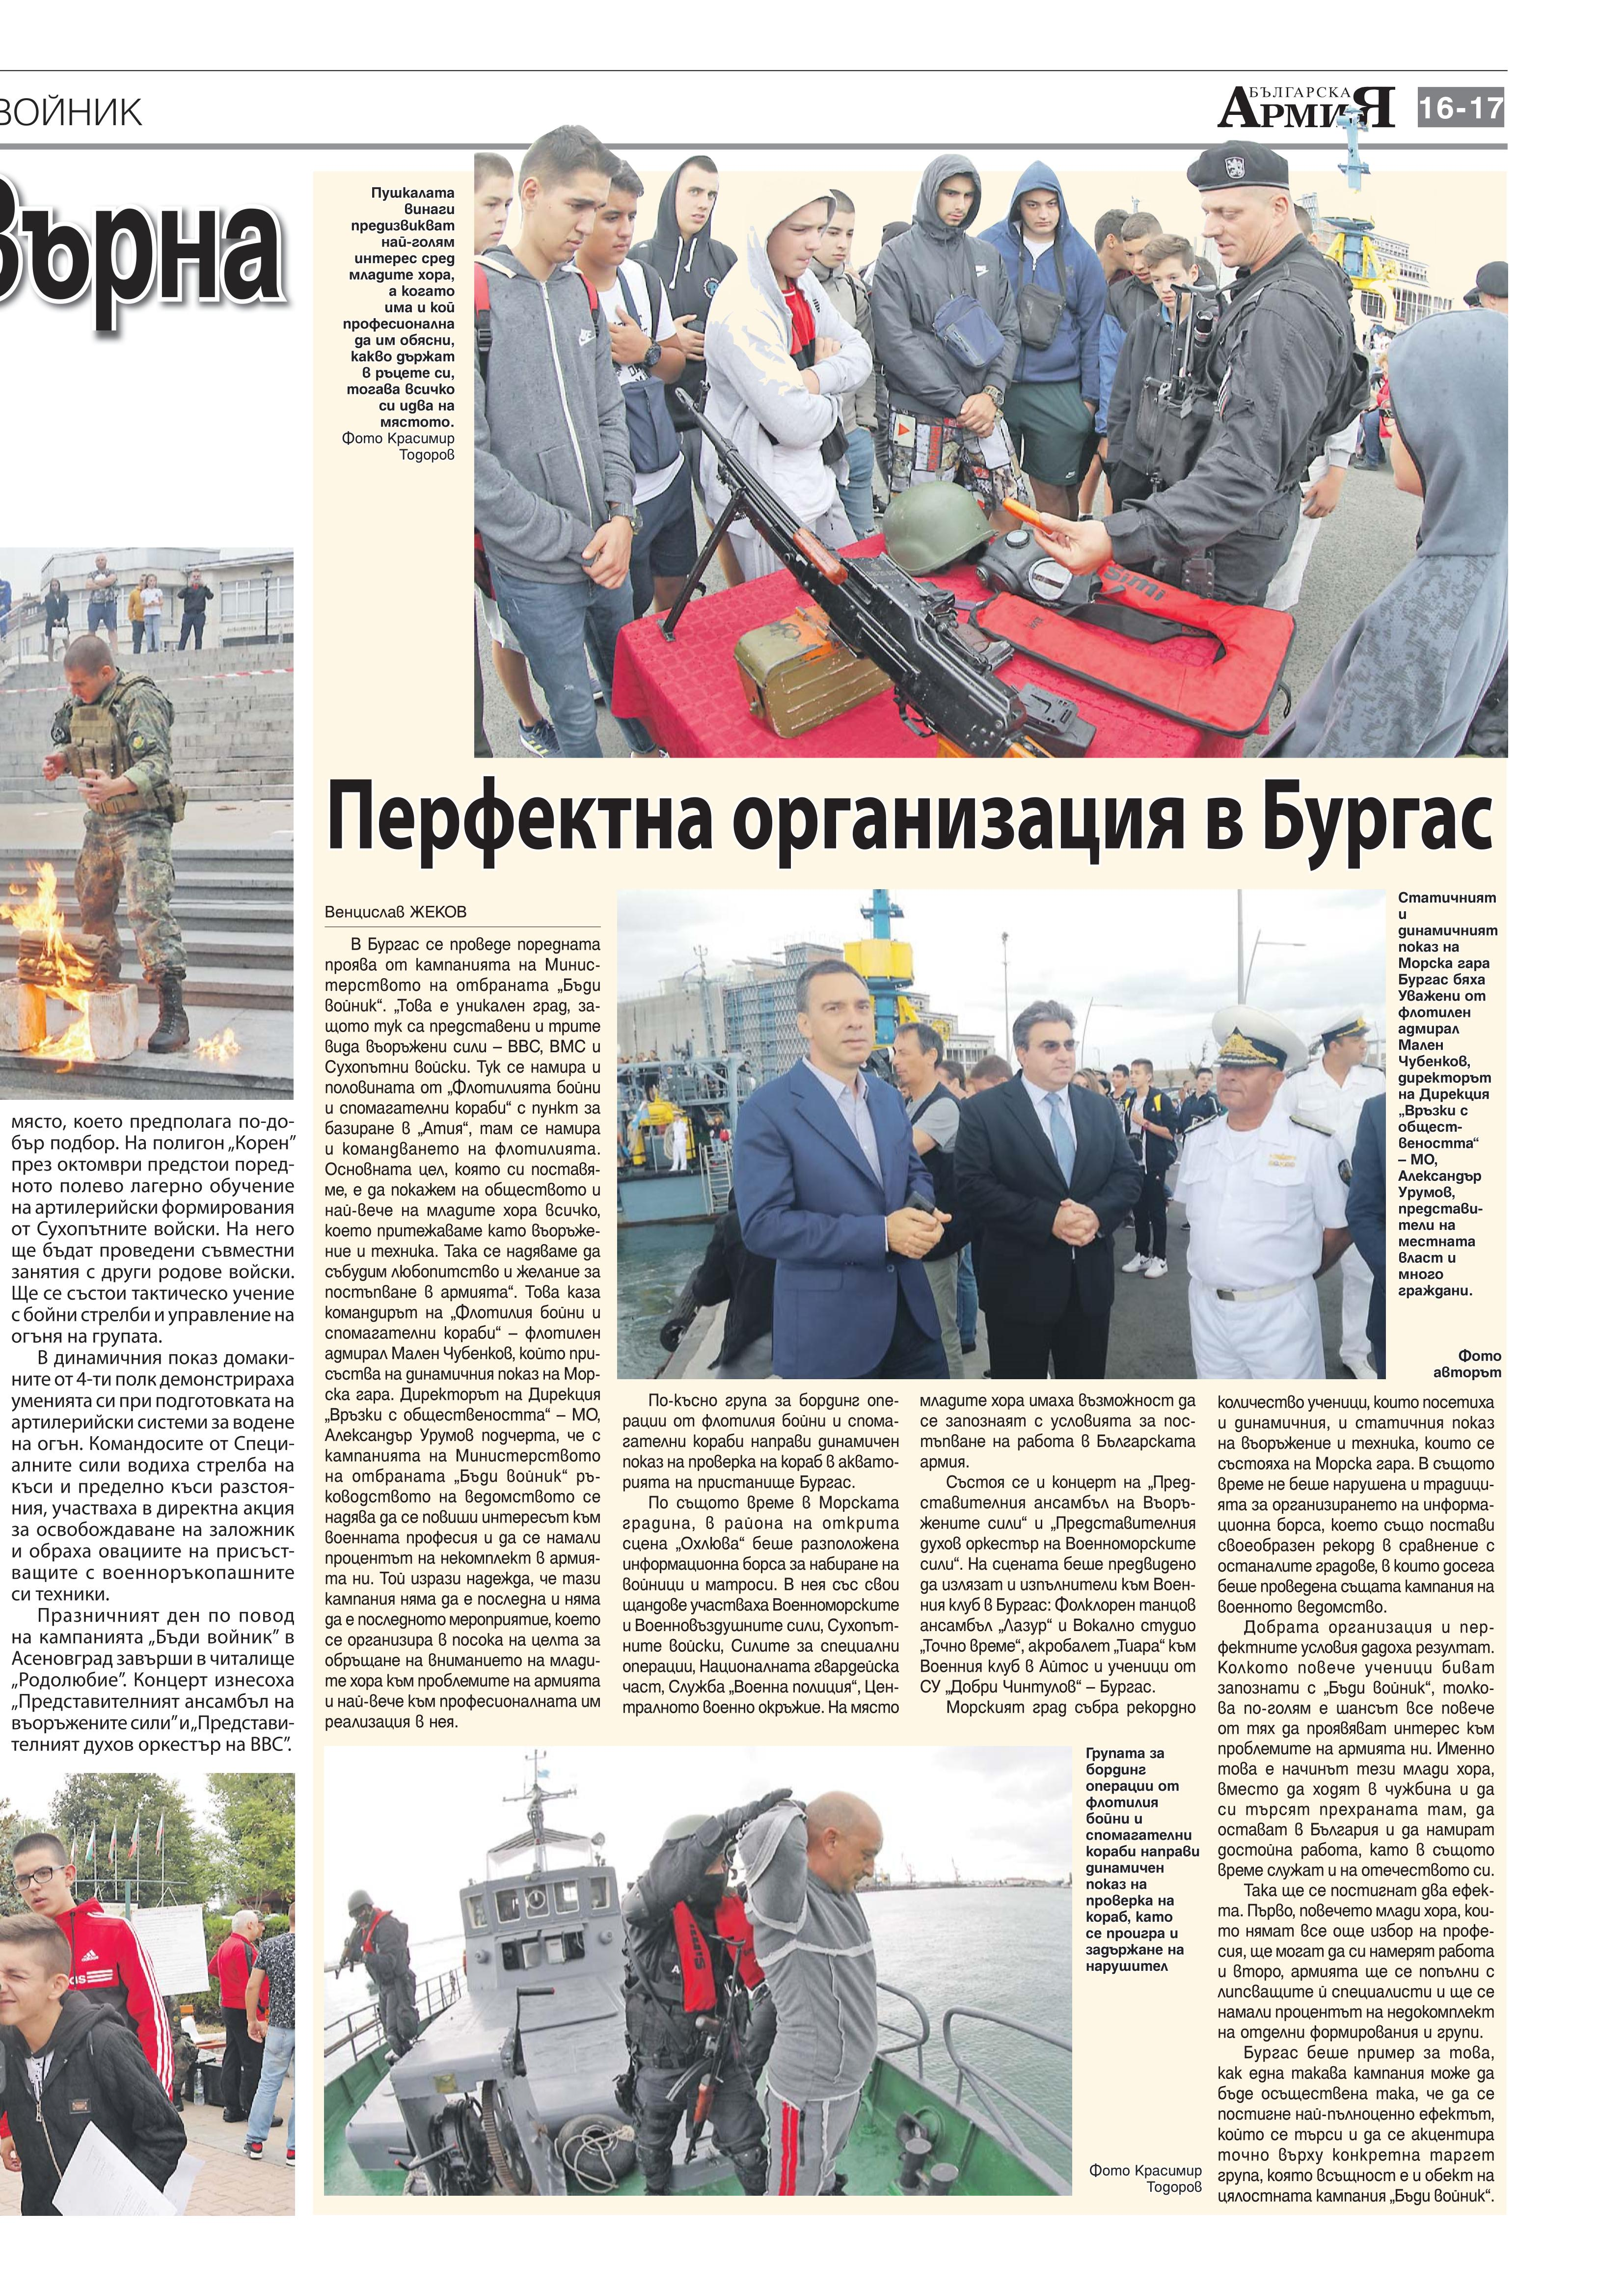 https://www.armymedia.bg/wp-content/uploads/2015/06/17.page1_-110.jpg